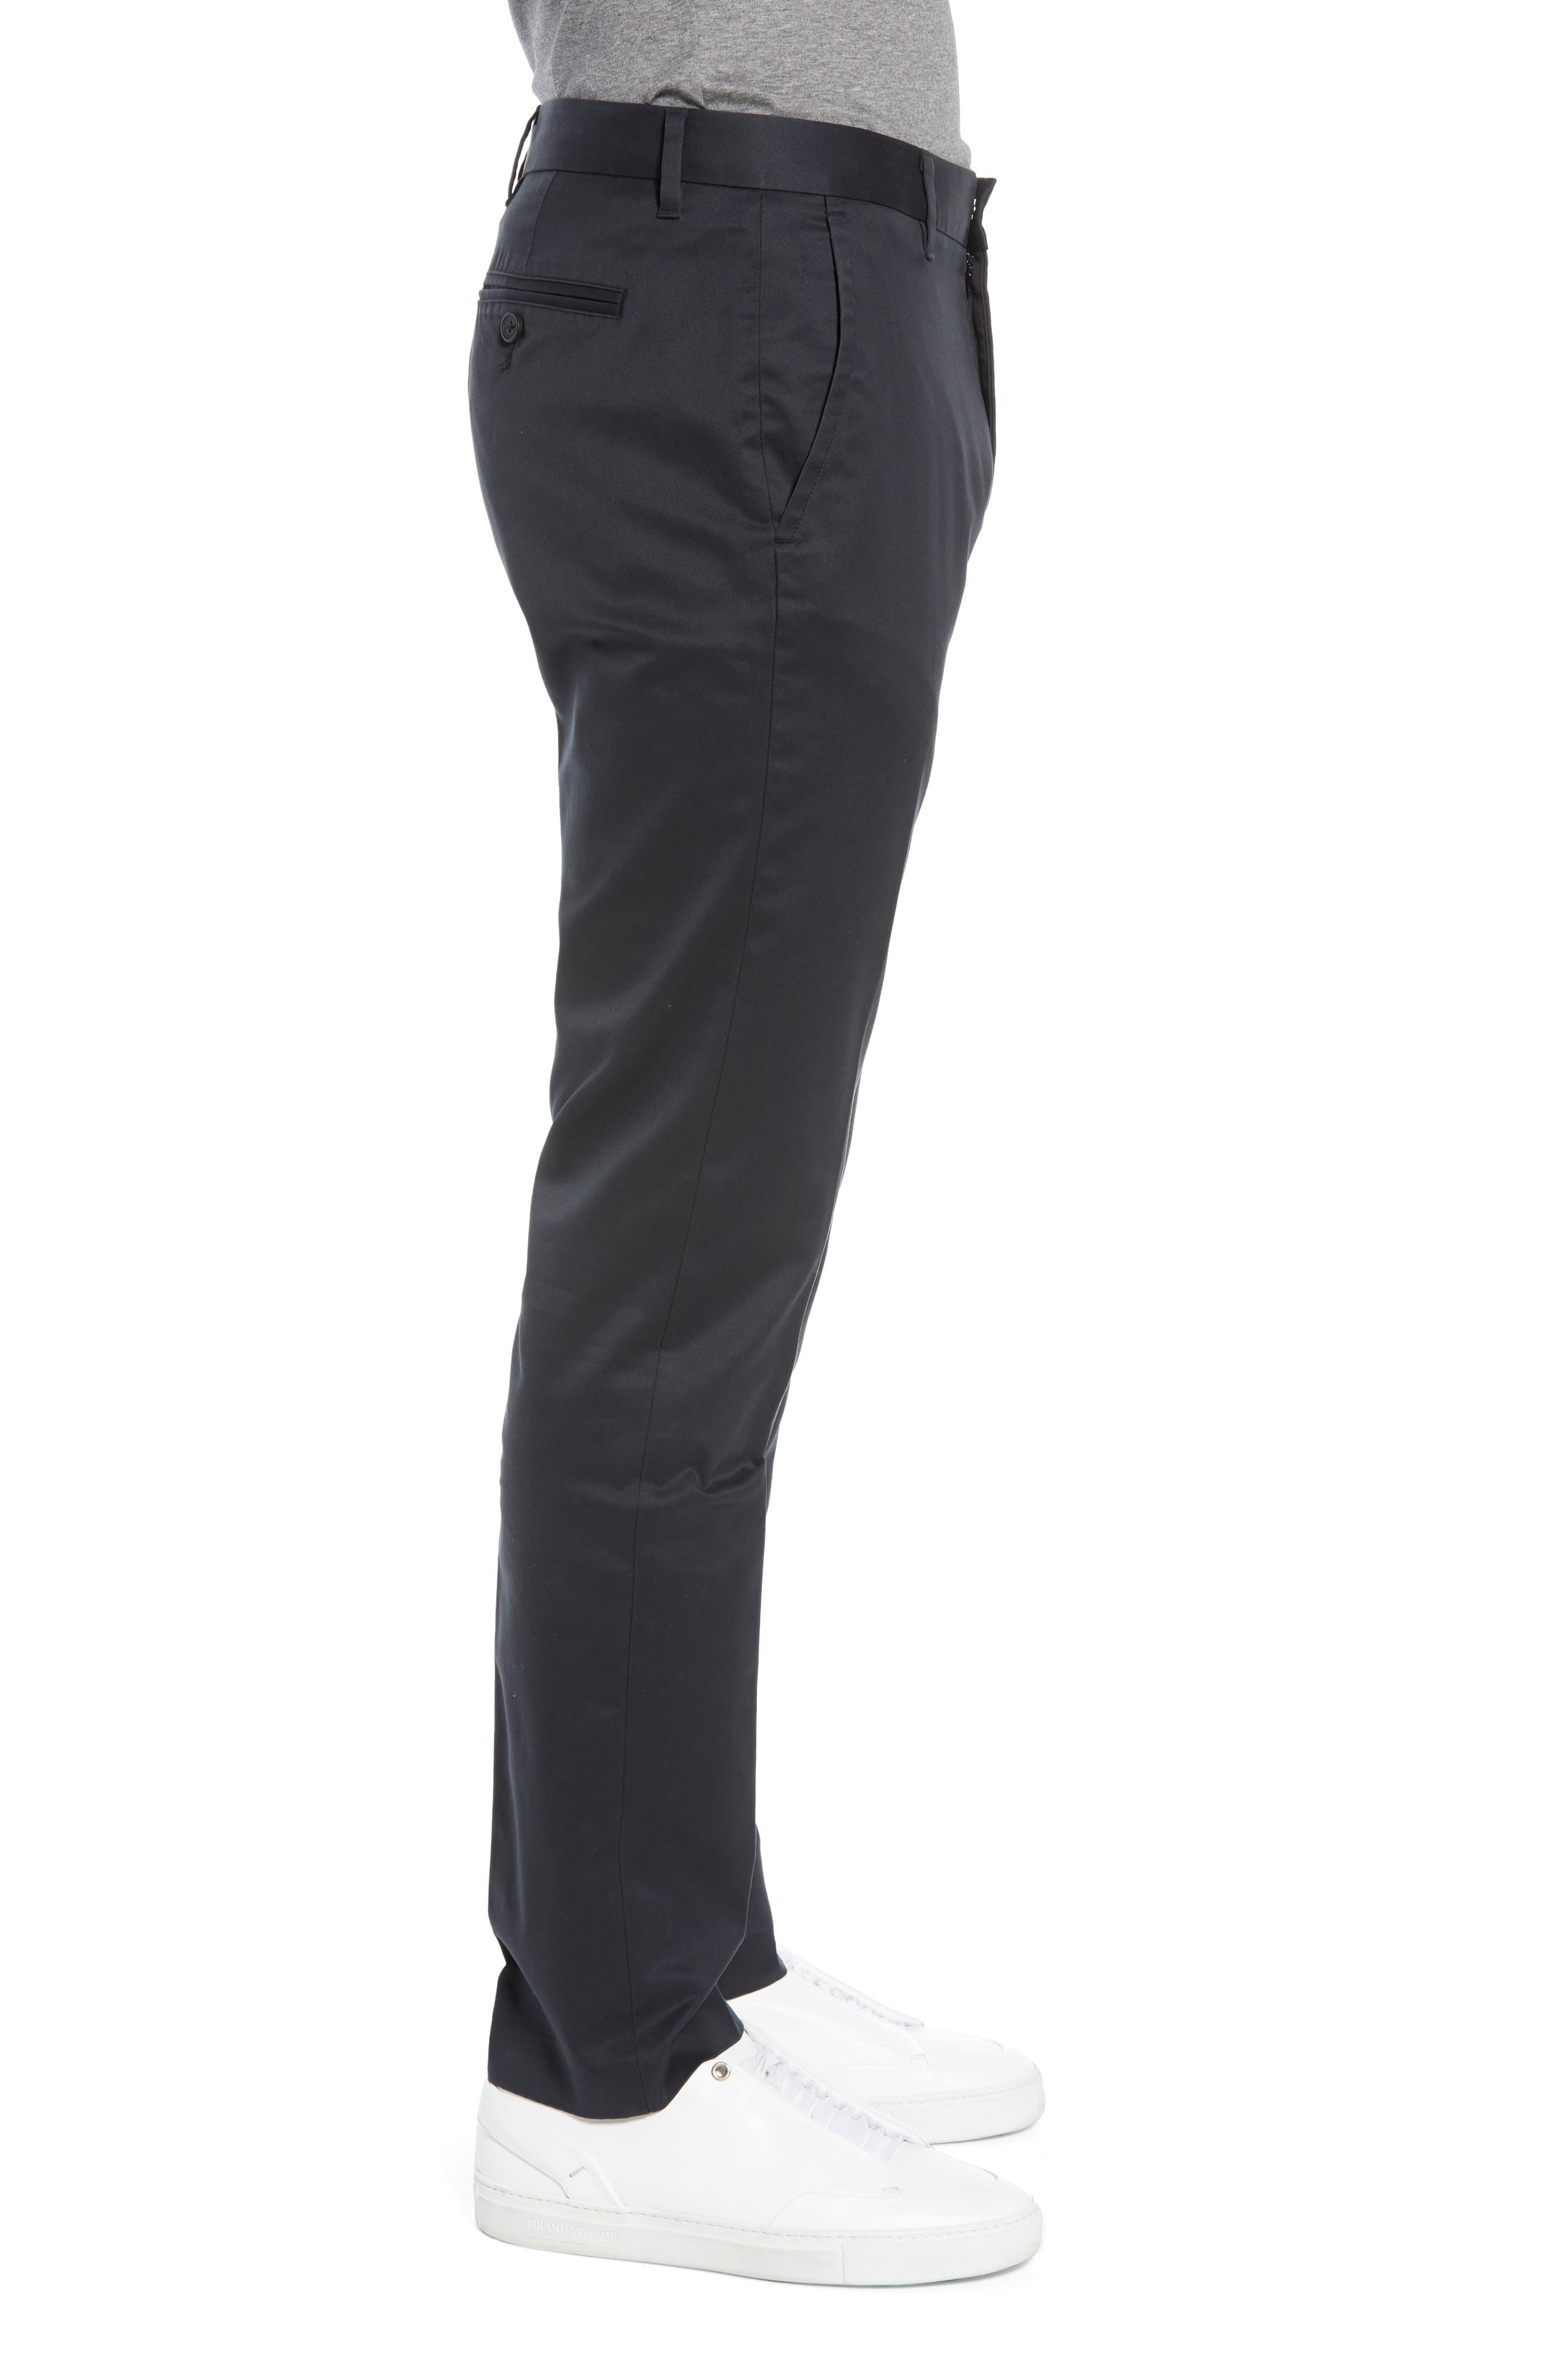 BONOBOS, Weekday Warrior Tailored Fit Stretch Dress Pants, Alternate thumbnail 4, color, BLACK